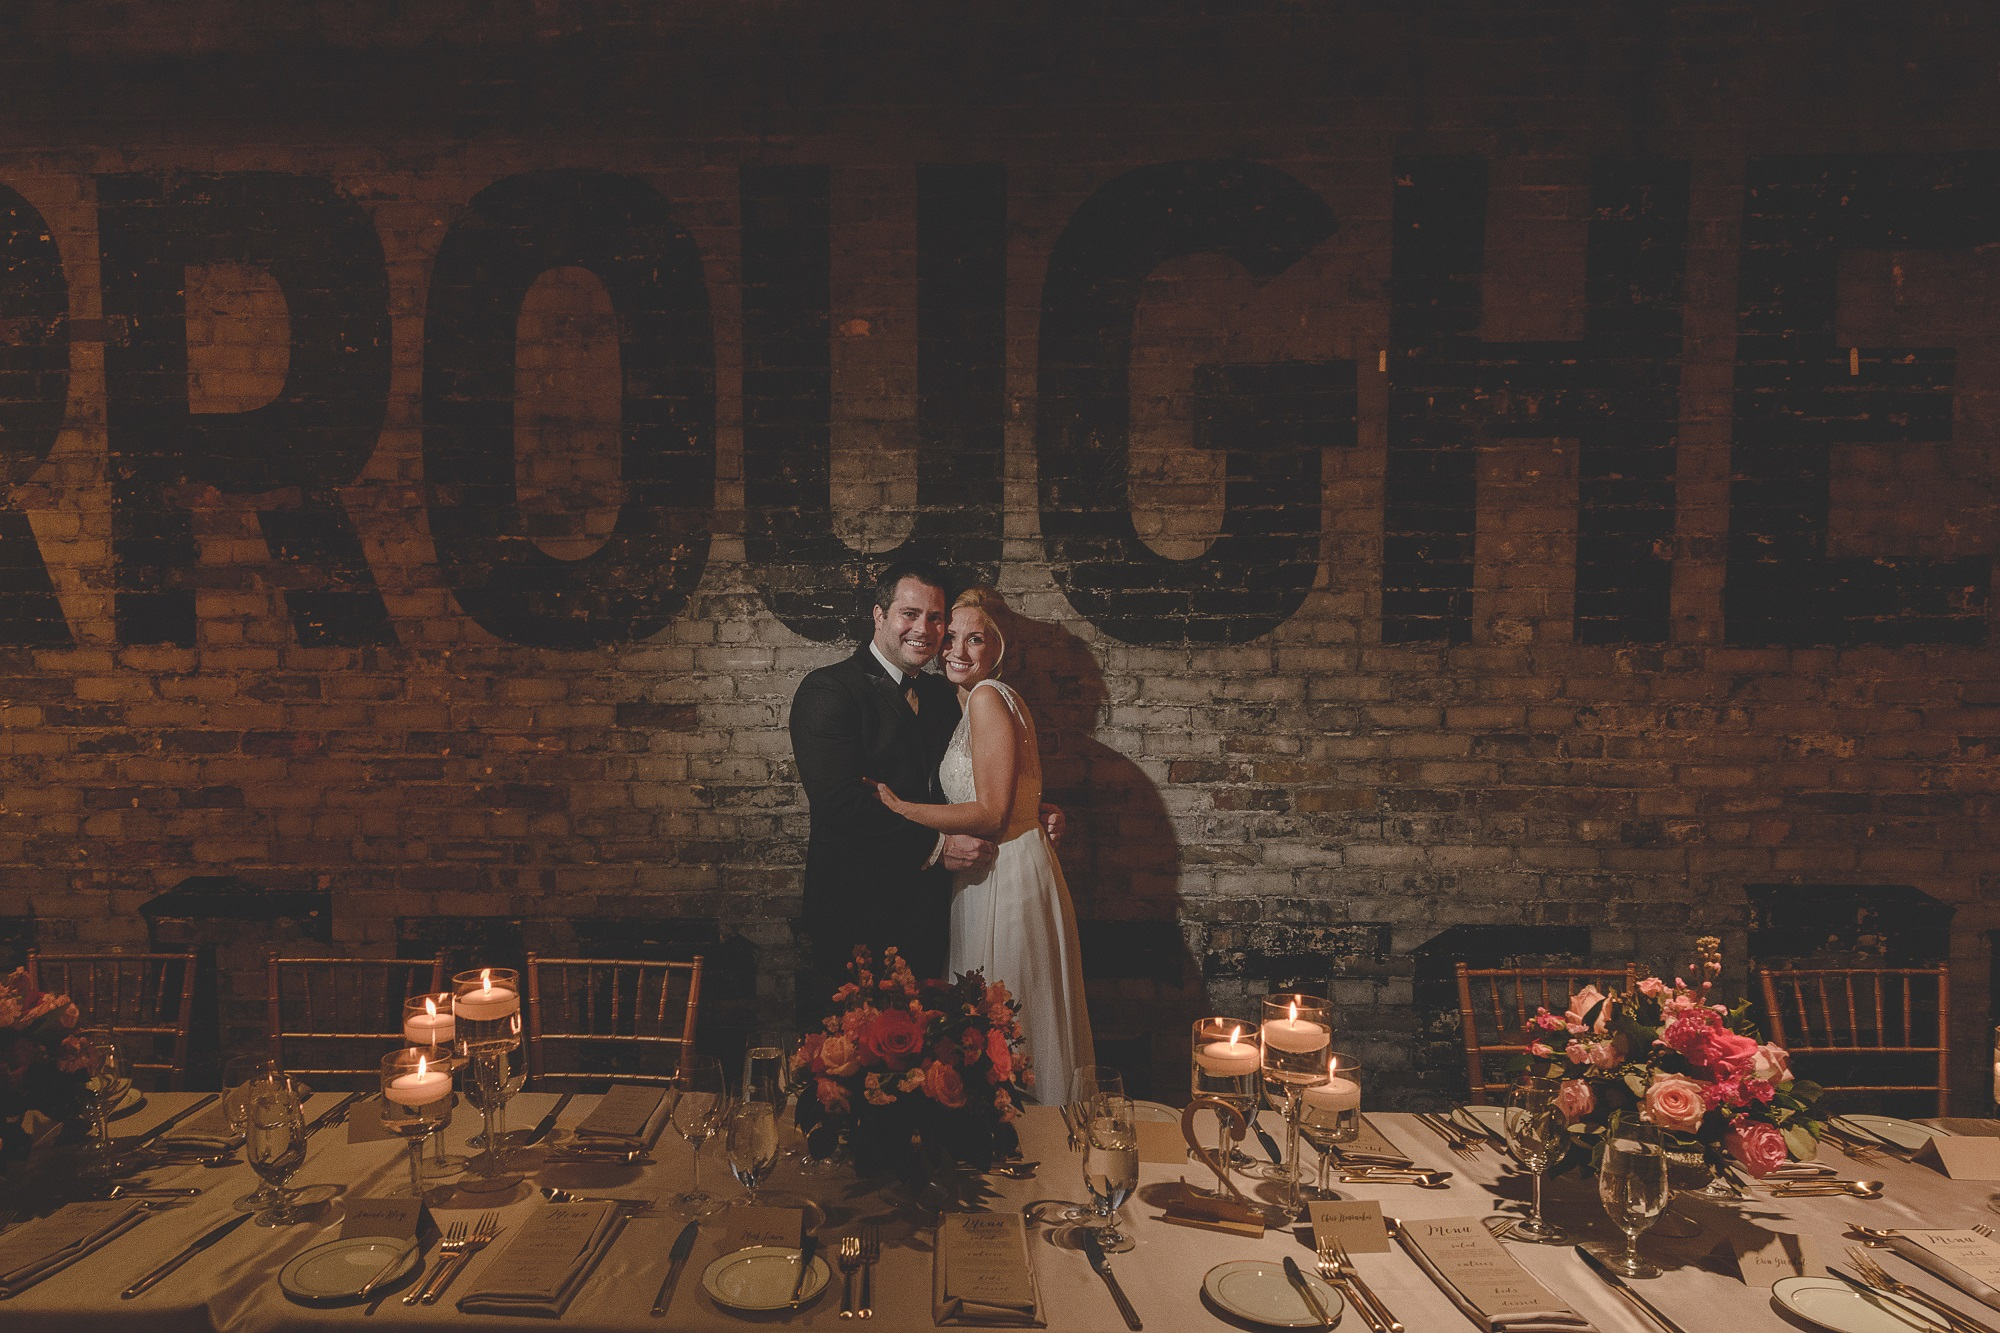 burroughes-building-toronto-wedding-kj-and-co-vaughn-barry-photography1.jpg